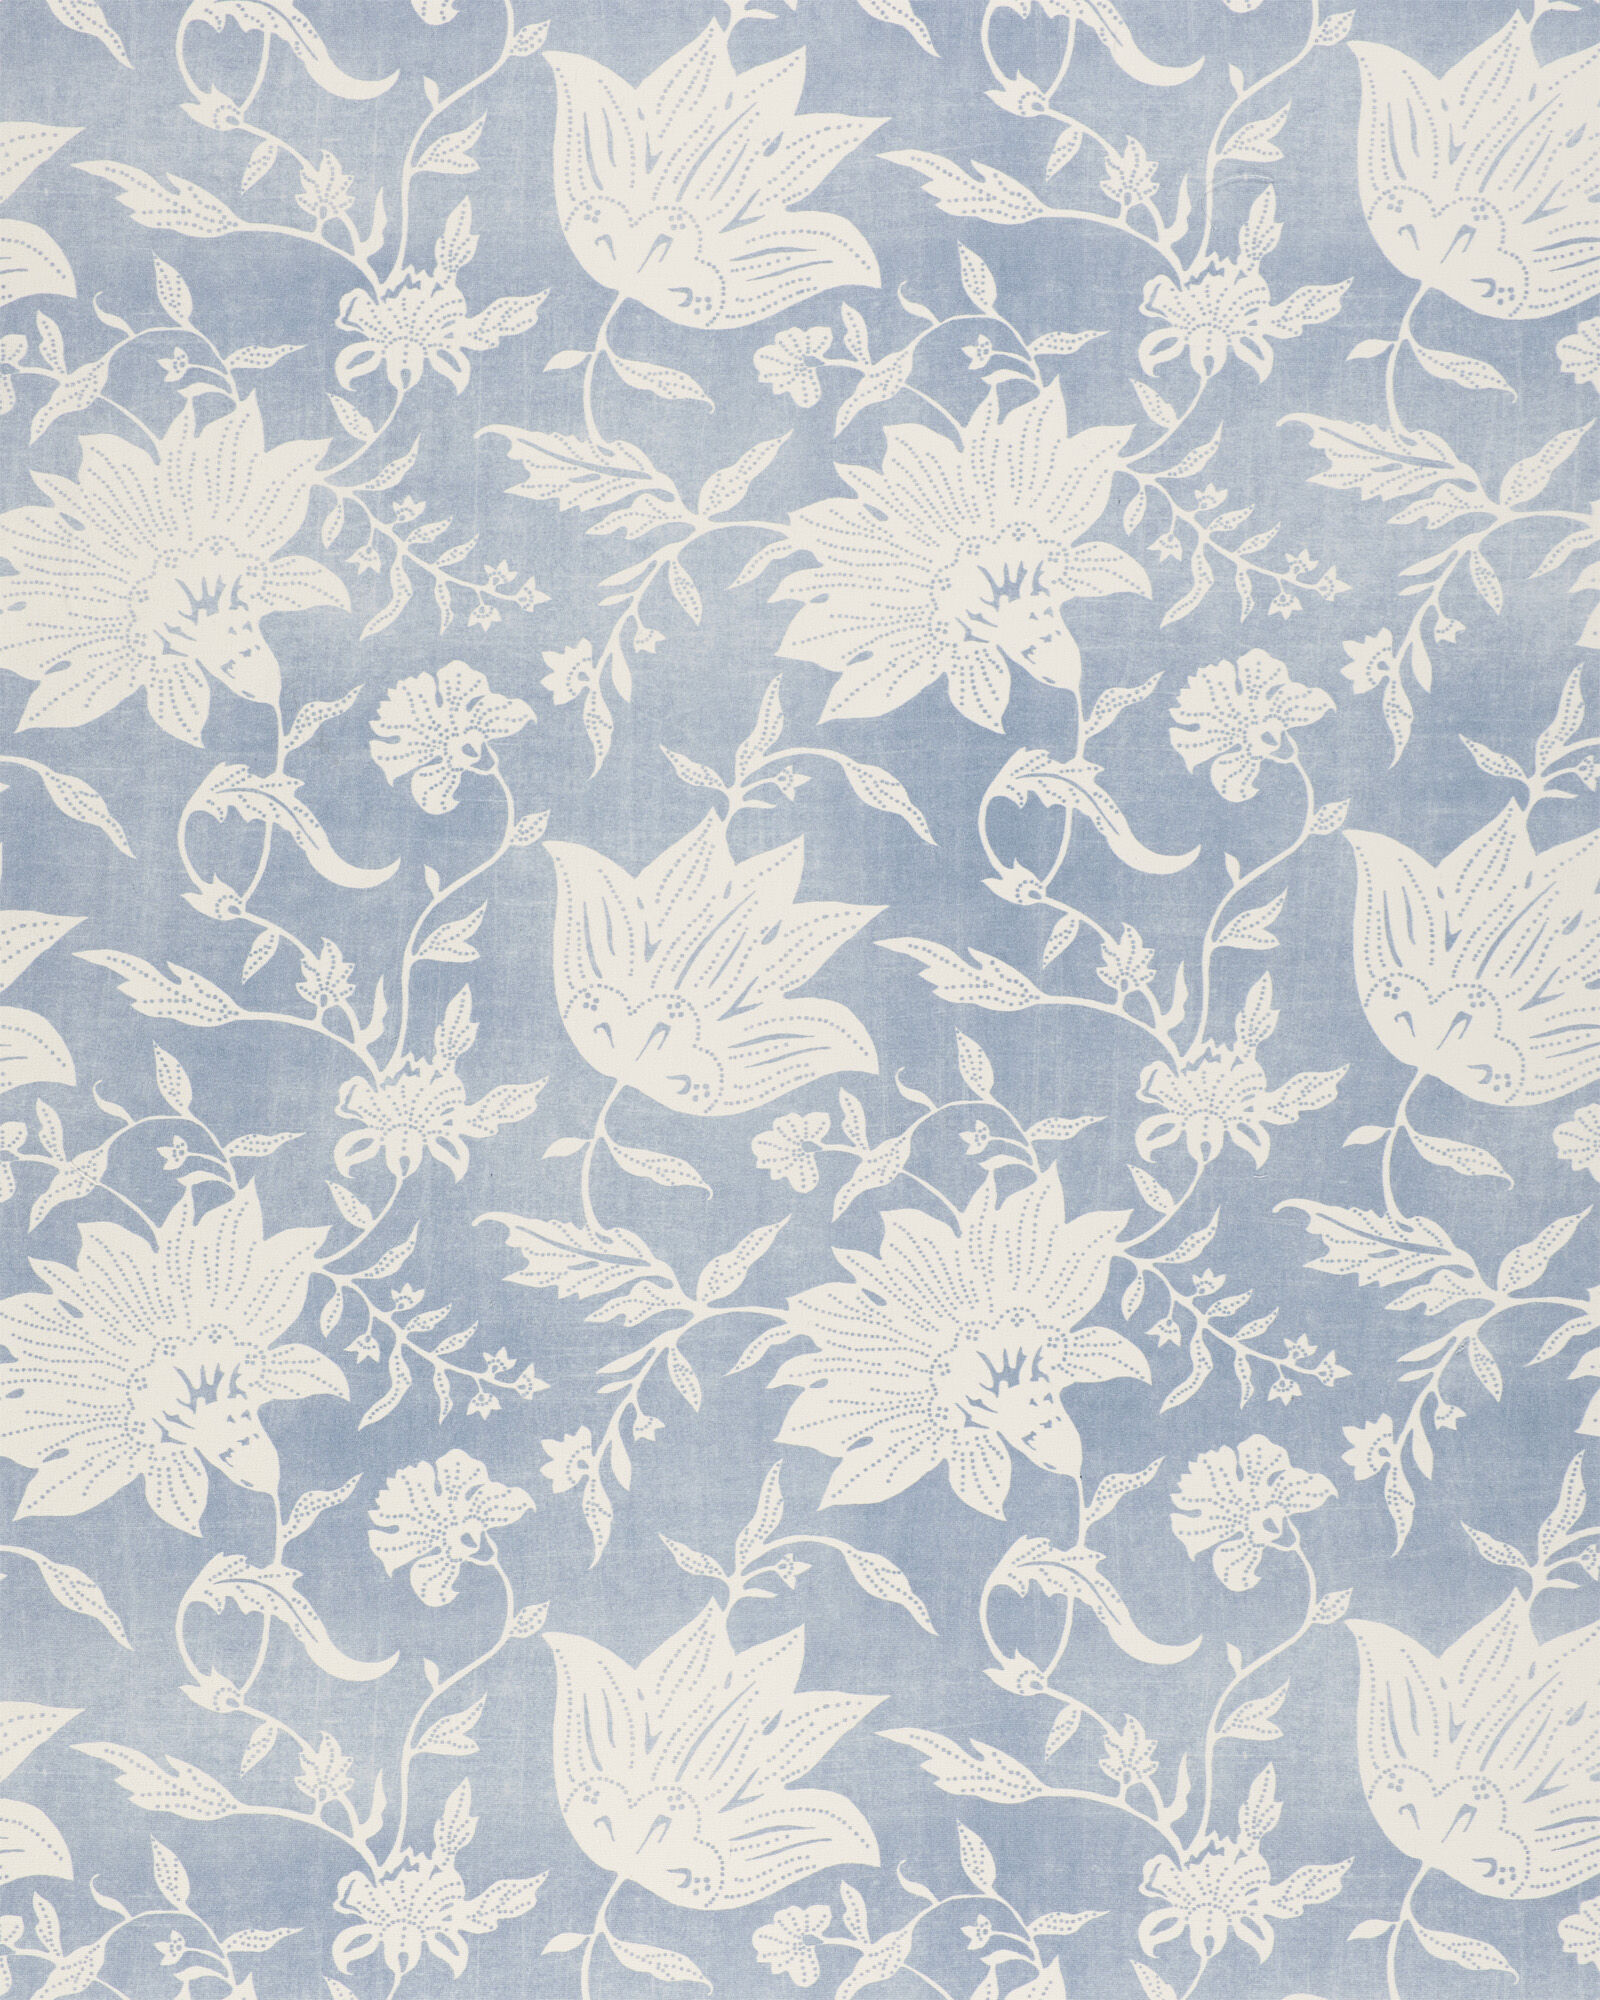 Fabric by the Yard - S&L Performance Deauville, Coastal Blue